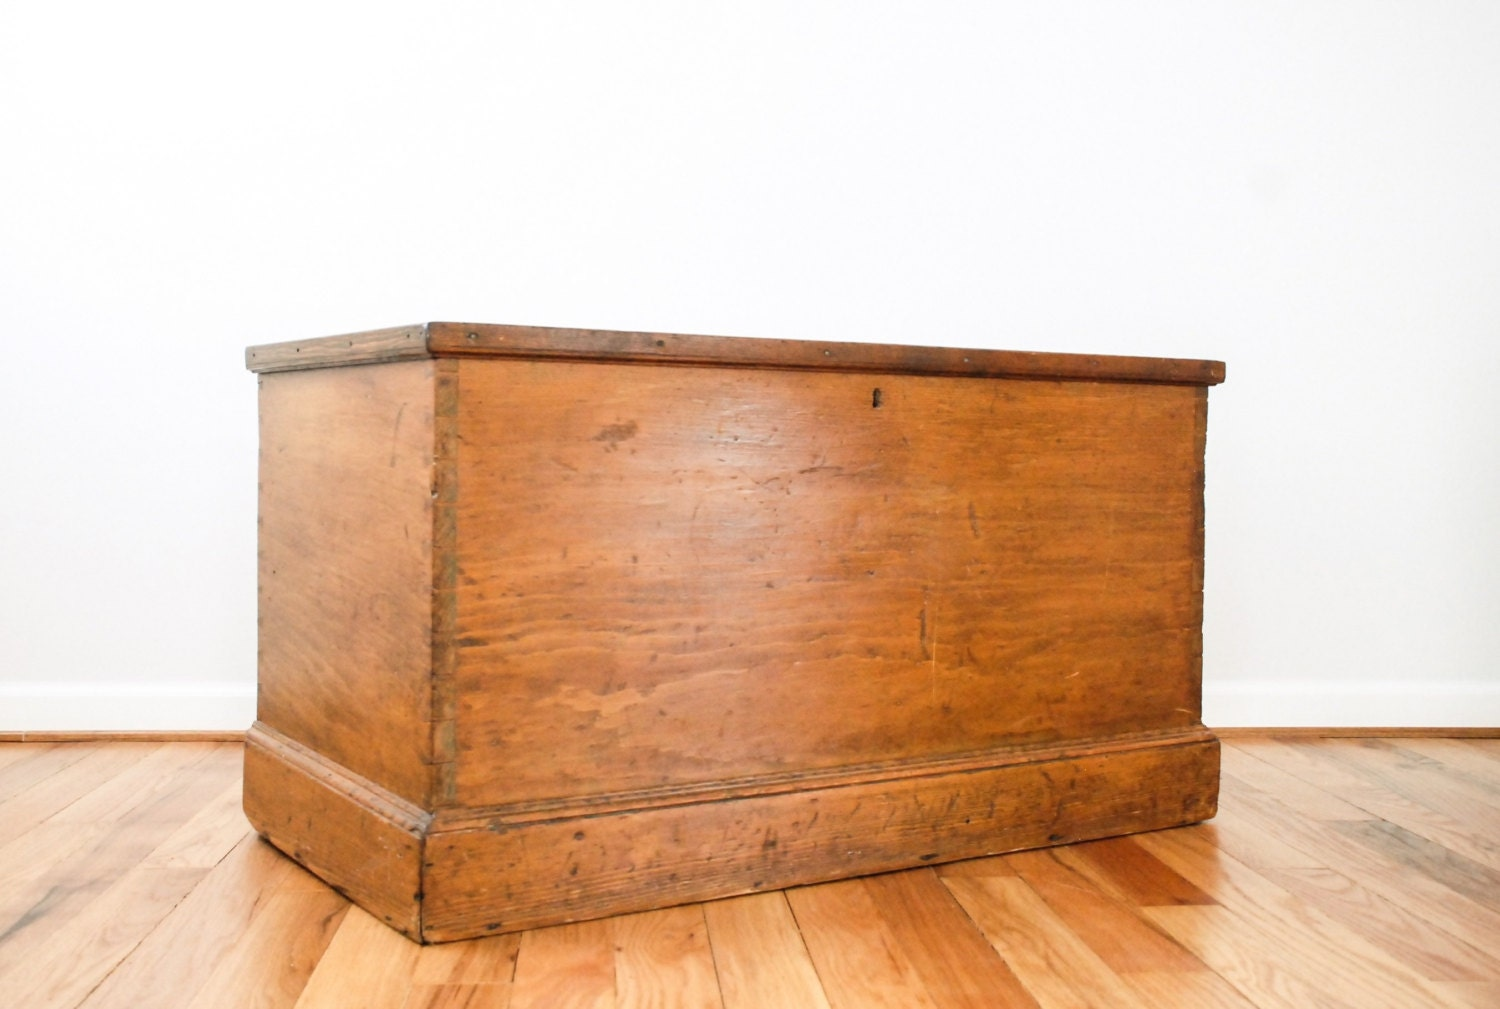 Blanket chest antique hope chest wood trunk coffee by littlecows